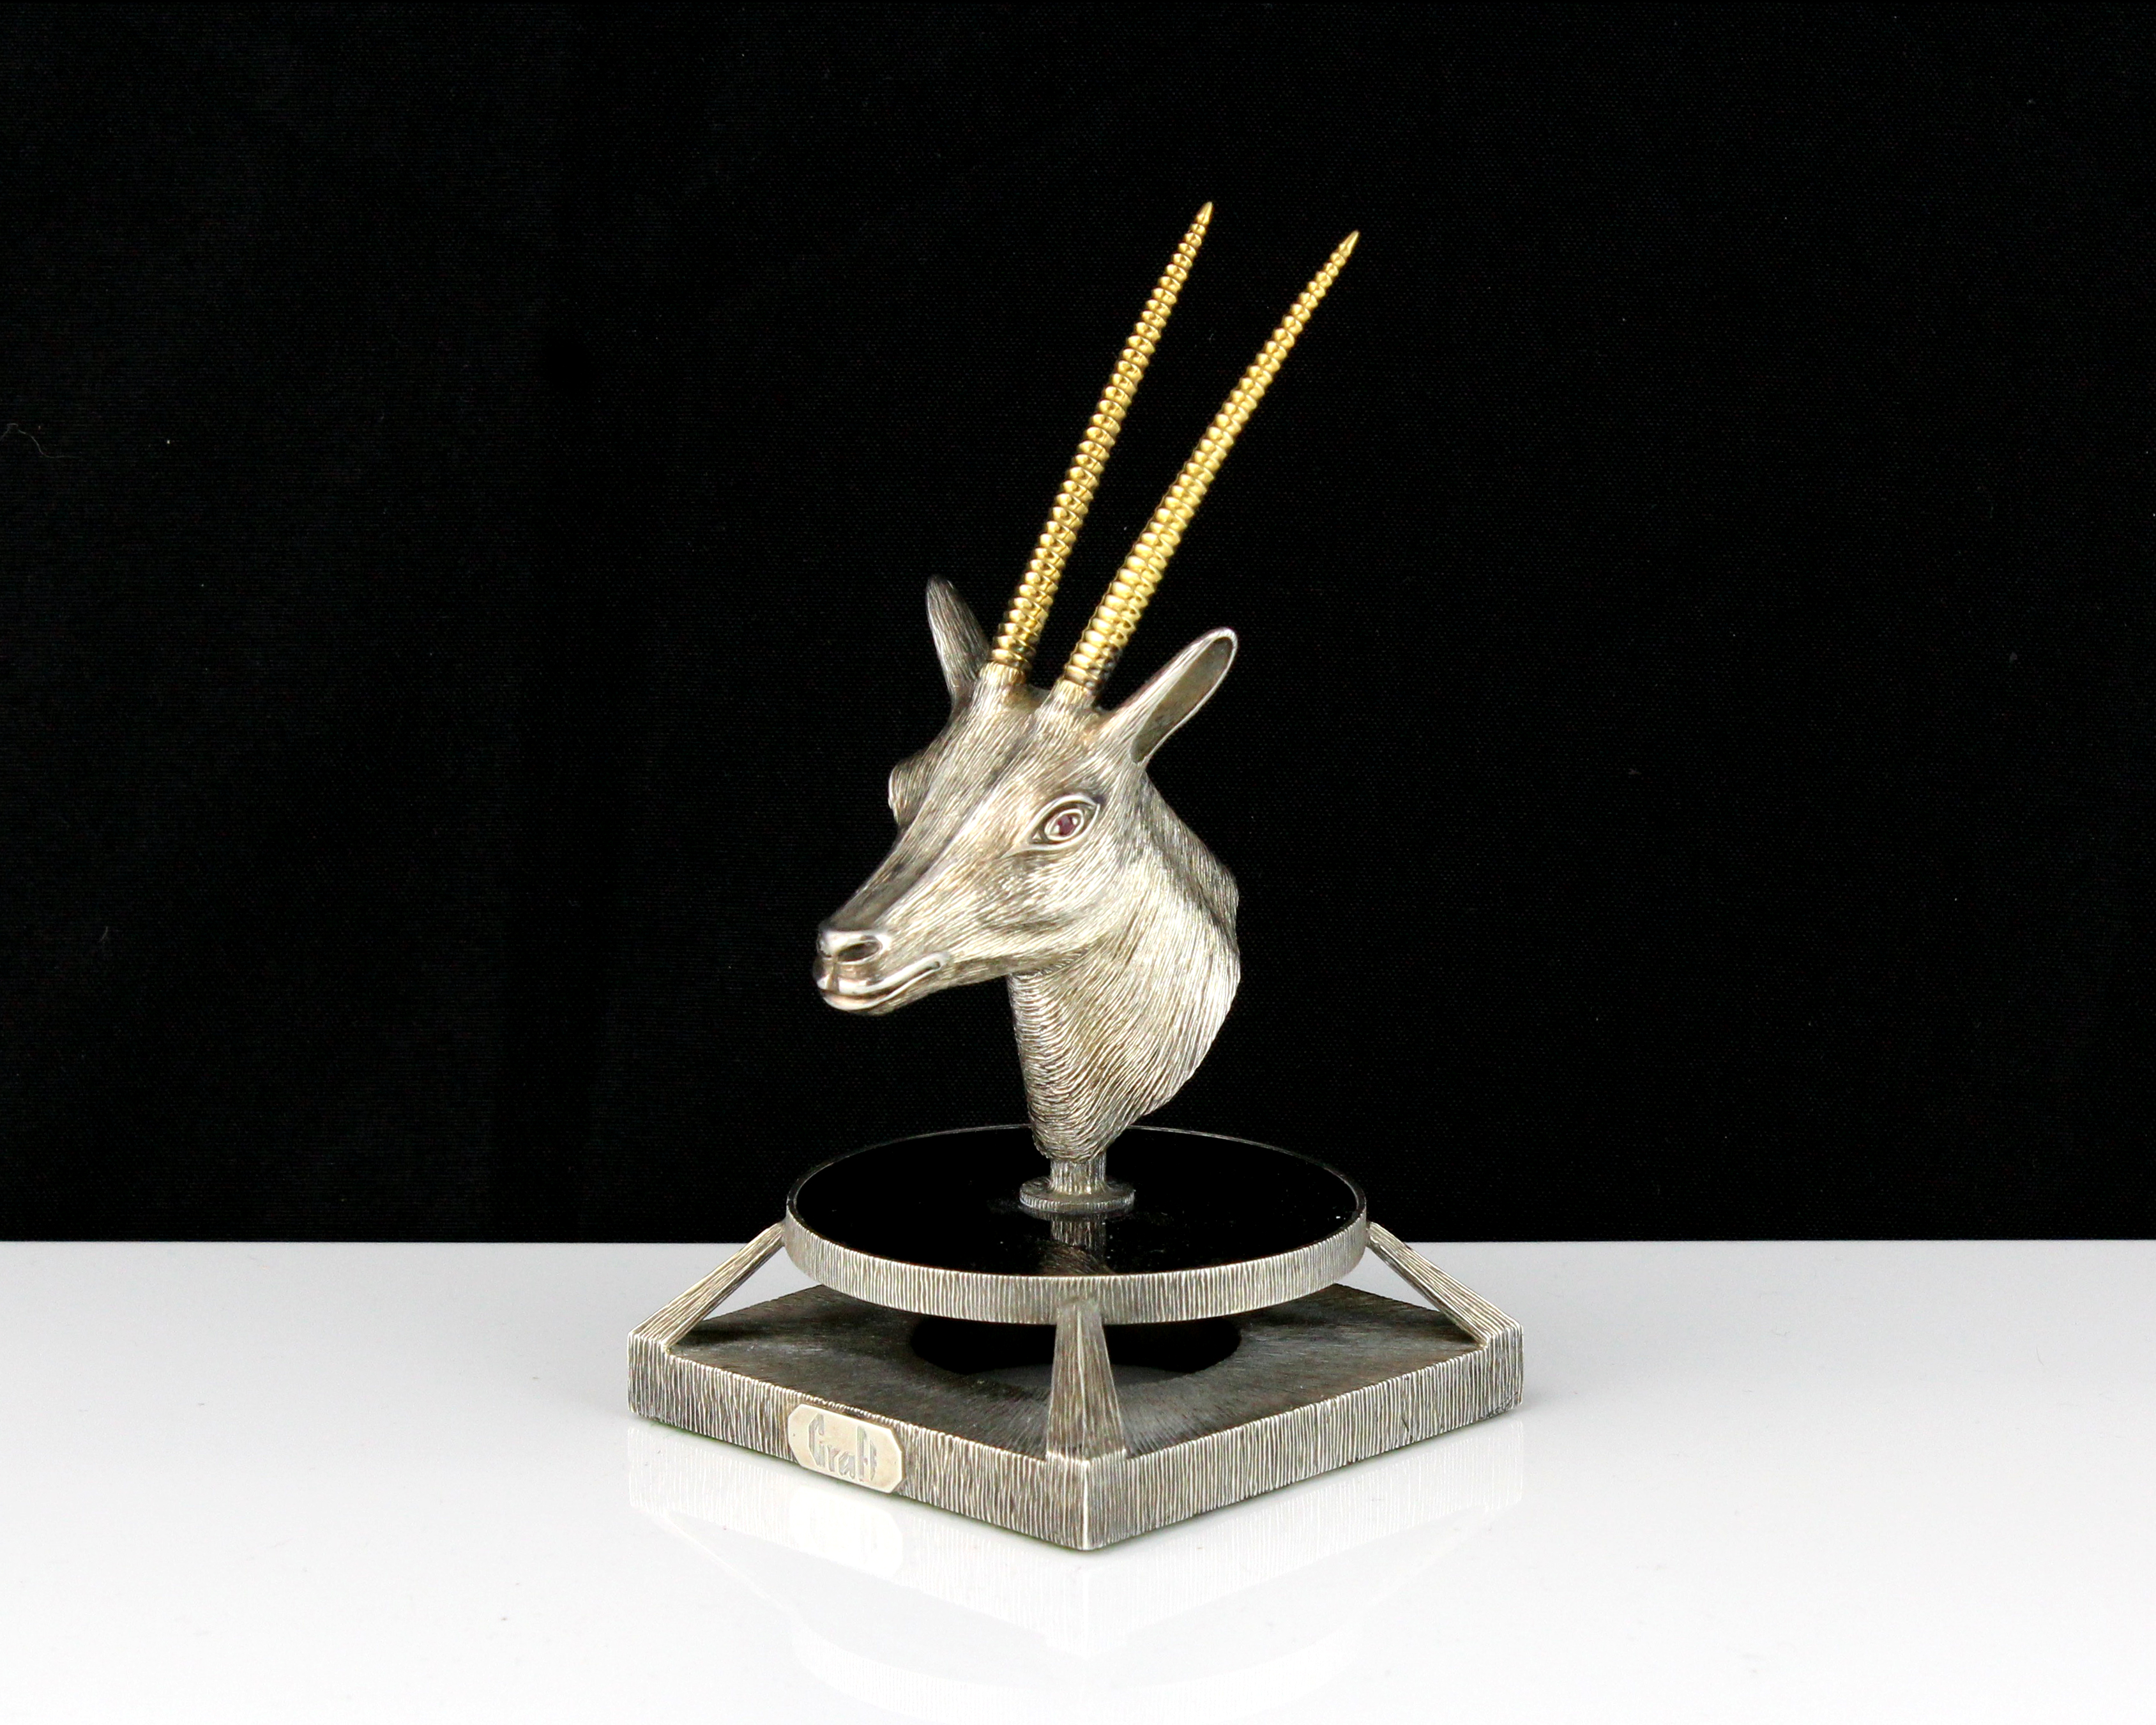 Los 75 - A jewelled silver oryx head statue signed Graff designed as the head of an oryx cast in silver